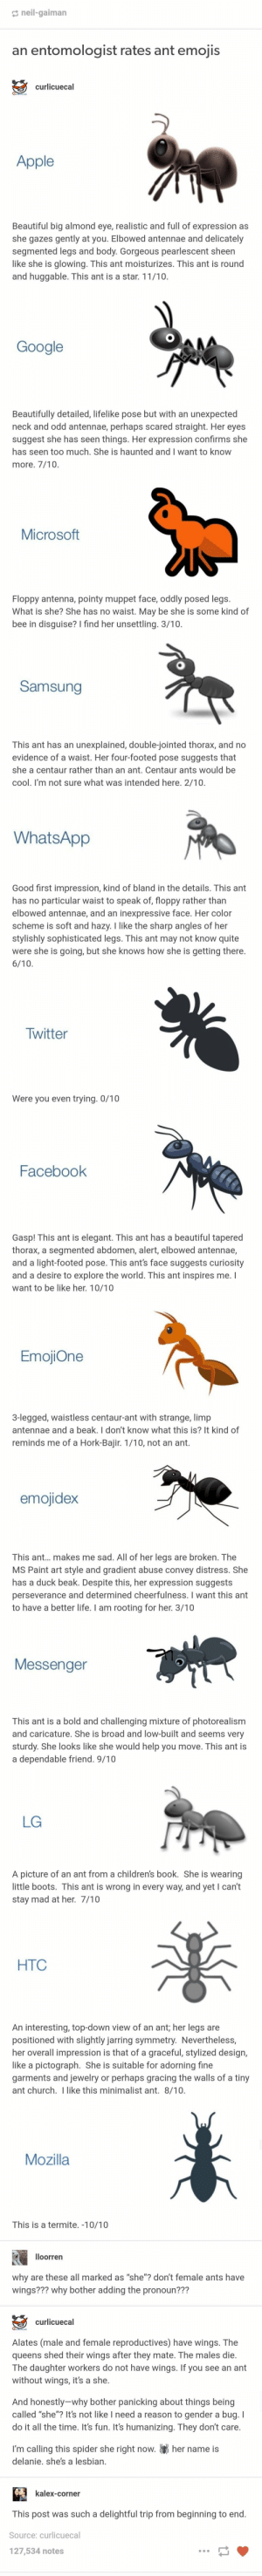 scared straight: neil-gaiman  an entomologist rates ant emojis  curlicuecal  CURLICUE  Apple  Beautiful big almond eye, realistic and full of expression as  she gazes gently at you. Elbowed antennae and delicately  segmented legs and body. Gorgeous pearlescent sheen  like she is glowing. This ant moisturizes. This ant is round  and huggable. This ant is a star. 11/10.  Google  Beautifully detailed, lifelike pose but with an unexpected  neck and odd antennae, perhaps scared straight. Her eyes  things. Her expression confirms she  suggest she has seen  has seen too much. She is haunted and I want to know  more. 7/10.  Microsoft  Floppy antenna, pointy muppet face, oddly posed legs.  What is she? She has no waist. May be she is some kind of  bee in disguise? I find her unsettling. 3/10.  Samsung  This ant has an unexplained, double-jointed thorax, and no  evidence of a waist. Her four-footed pose suggests that  she a centaur rather than an ant. Centaur ants would be  cool. I'm not sure what was intended here. 2/10.  WhatsApp  Good first impression, kind of bland in the details. This ant  has no particular waist to speak of, floppy rather than  elbowed antennae, and an inexpressive face. Her color  scheme is soft and hazy. I like the sharp angles of her  stylishly sophisticated legs. This ant may not know quite  were she is going, but she knows how she is getting there.  6/10  Twitter  Were you even trying. 0/10  Facebook  Gasp! This ant is elegant. This ant has a beautiful tapered  thorax, a segmented abdomen, alert, elbowed antennae,  and a light-footed pose. This ant's face suggests curiosity  and a desire to explore the world. This ant inspires me. I  want to be like her. 10/10  EmojiOne  3-legged, waistless centaur-ant with strange, limp  antennae and a beak. I don't know what this is? It kind of  reminds me of a Hork-Bajir. 1/10, not an ant.  emojidex  This ant... makes me sad. All of her legs are broken. The  MS Paint art style and gradient abuse convey distress.